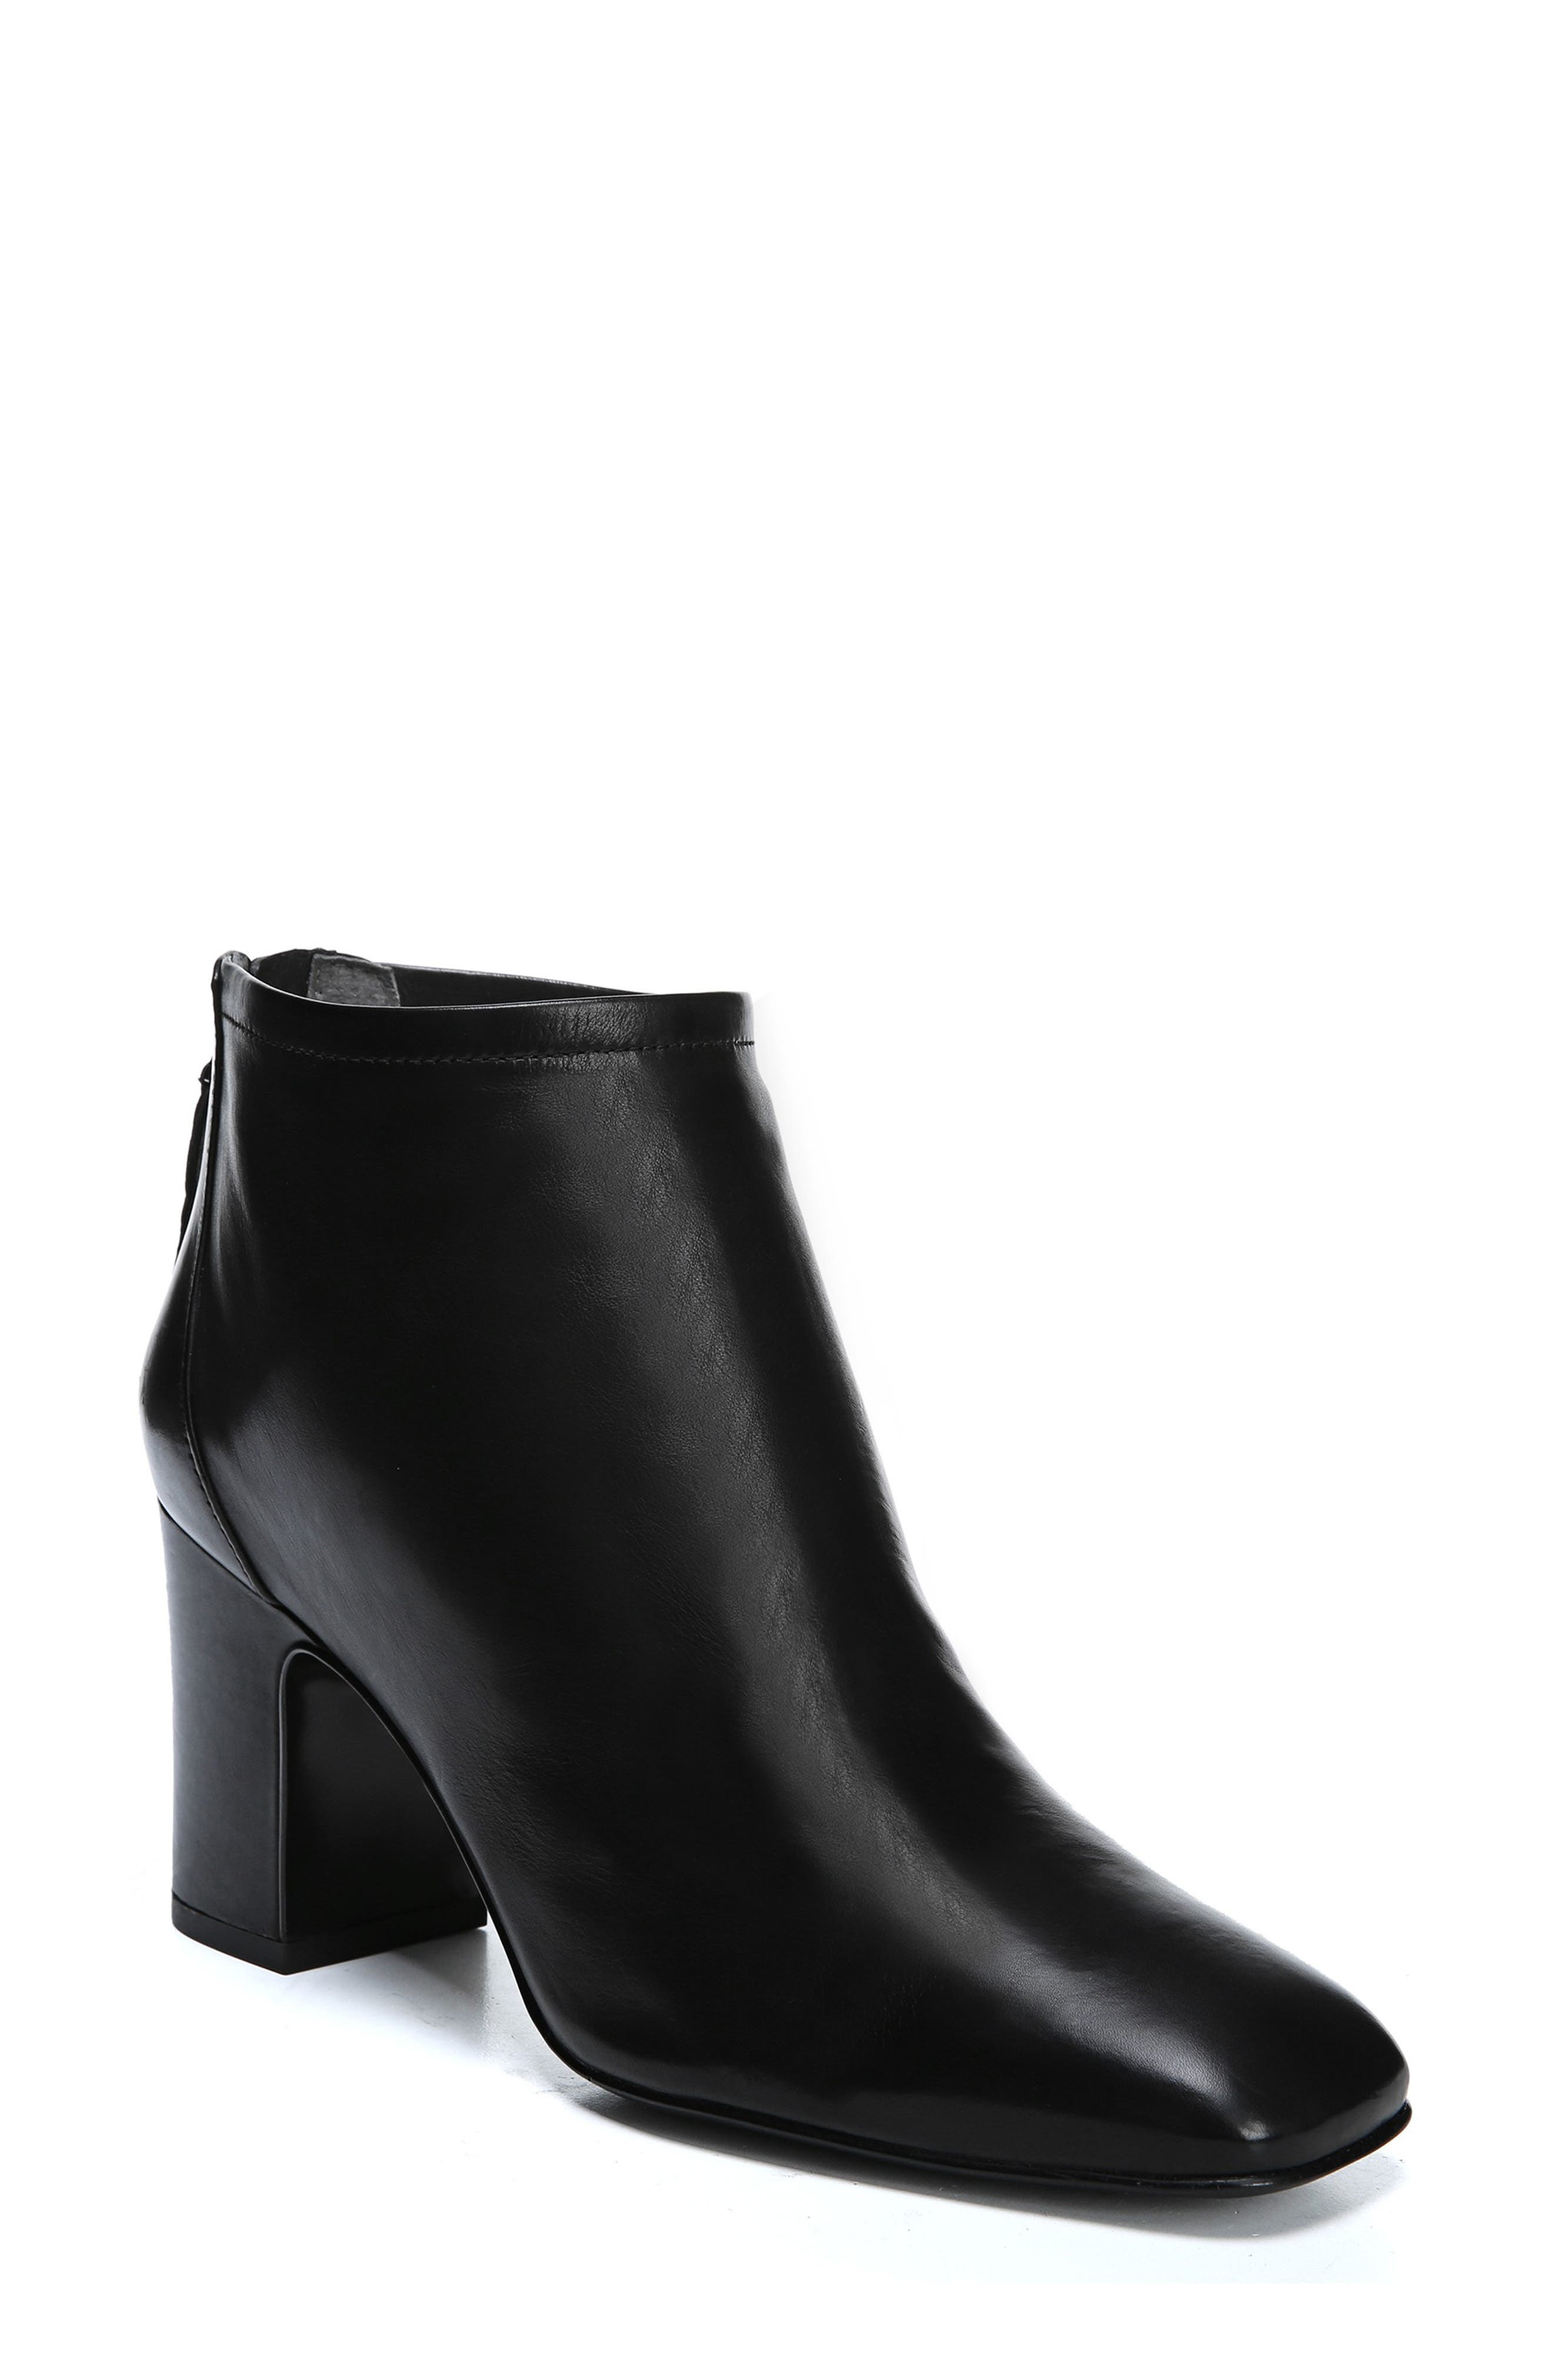 Jacoby Bootie,                             Main thumbnail 1, color,                             BLACK STRETCH LEATHER